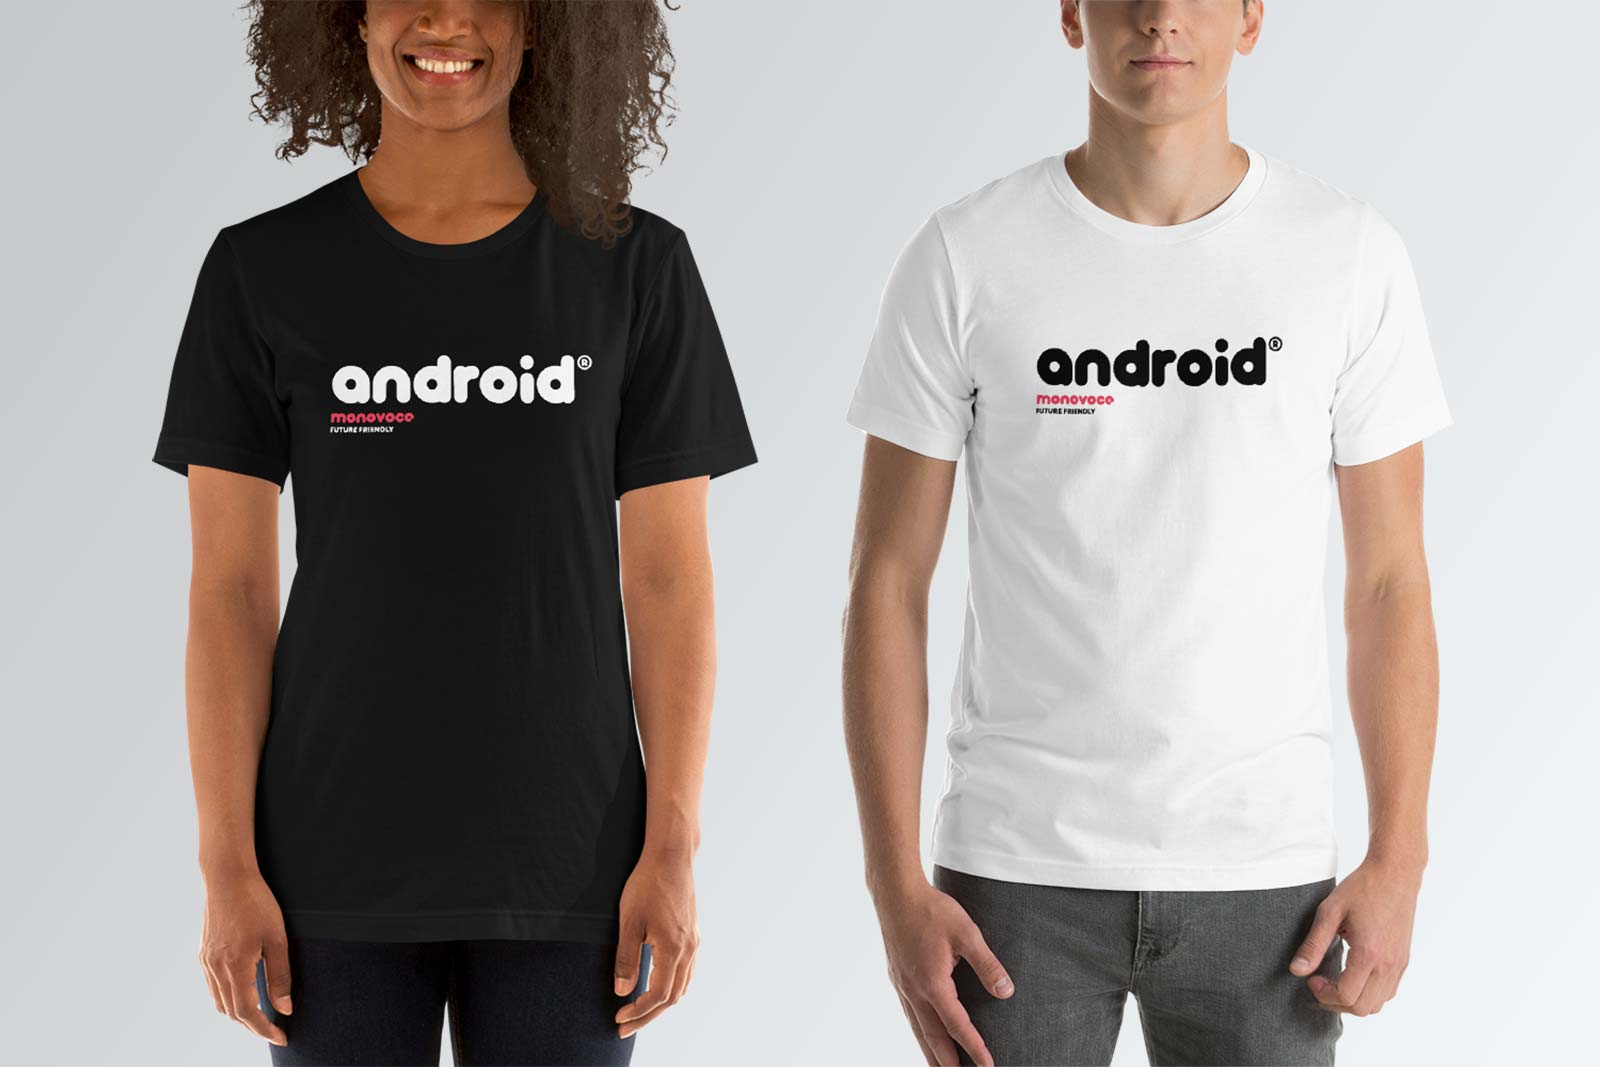 Android t-shirt for men in black and white